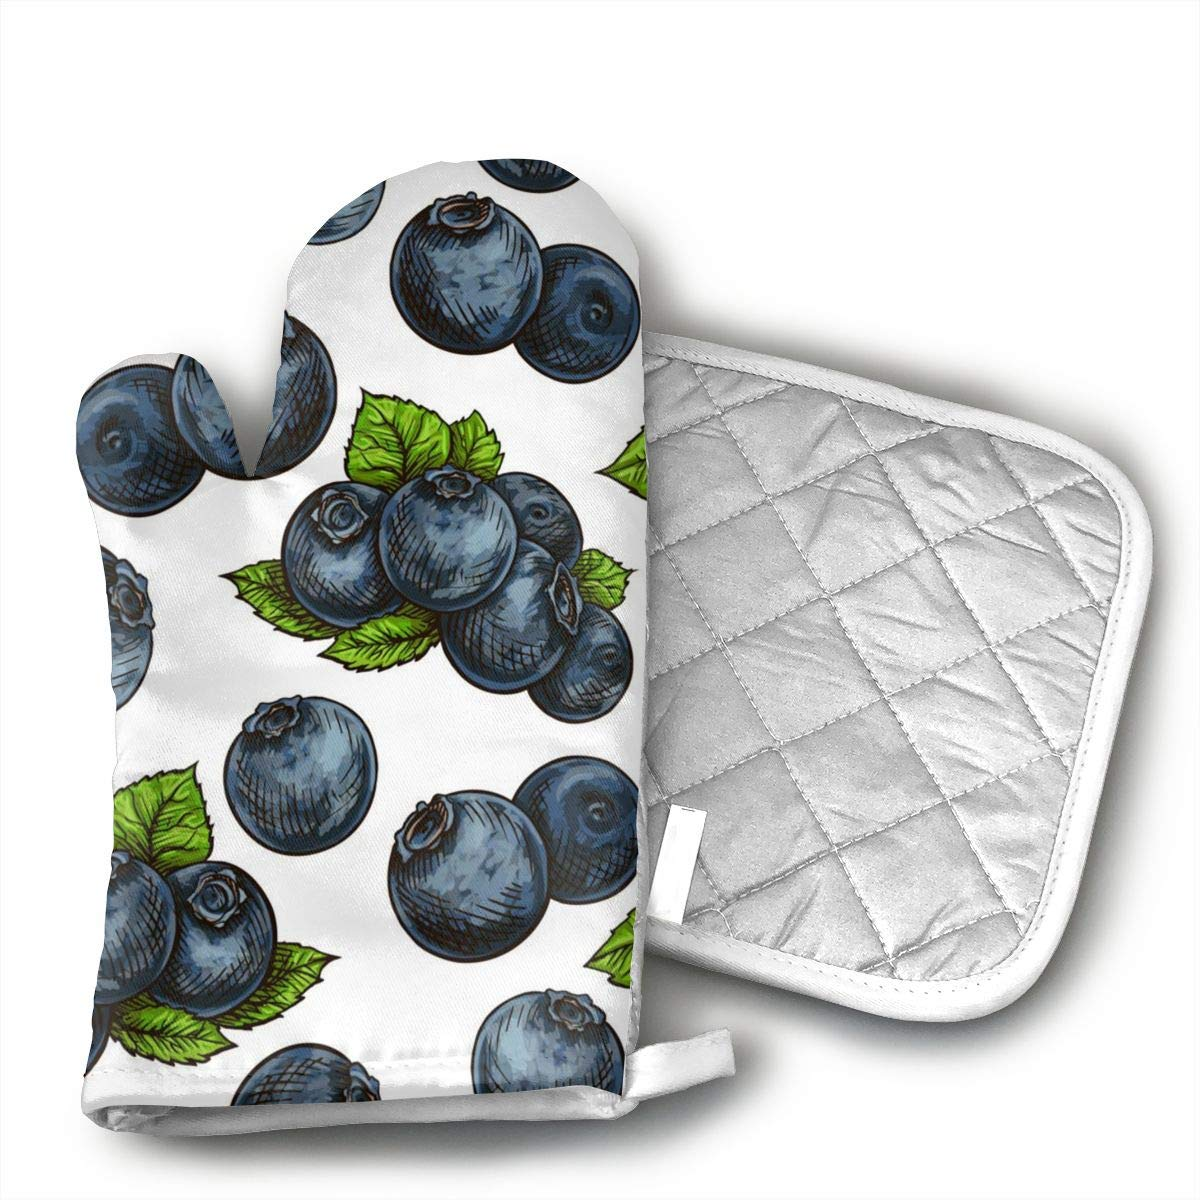 Wiqo9 Blueberry Pattern Oven Mitts and Pot Holders Kitchen Mitten Cooking Gloves,Cooking, Baking, BBQ.